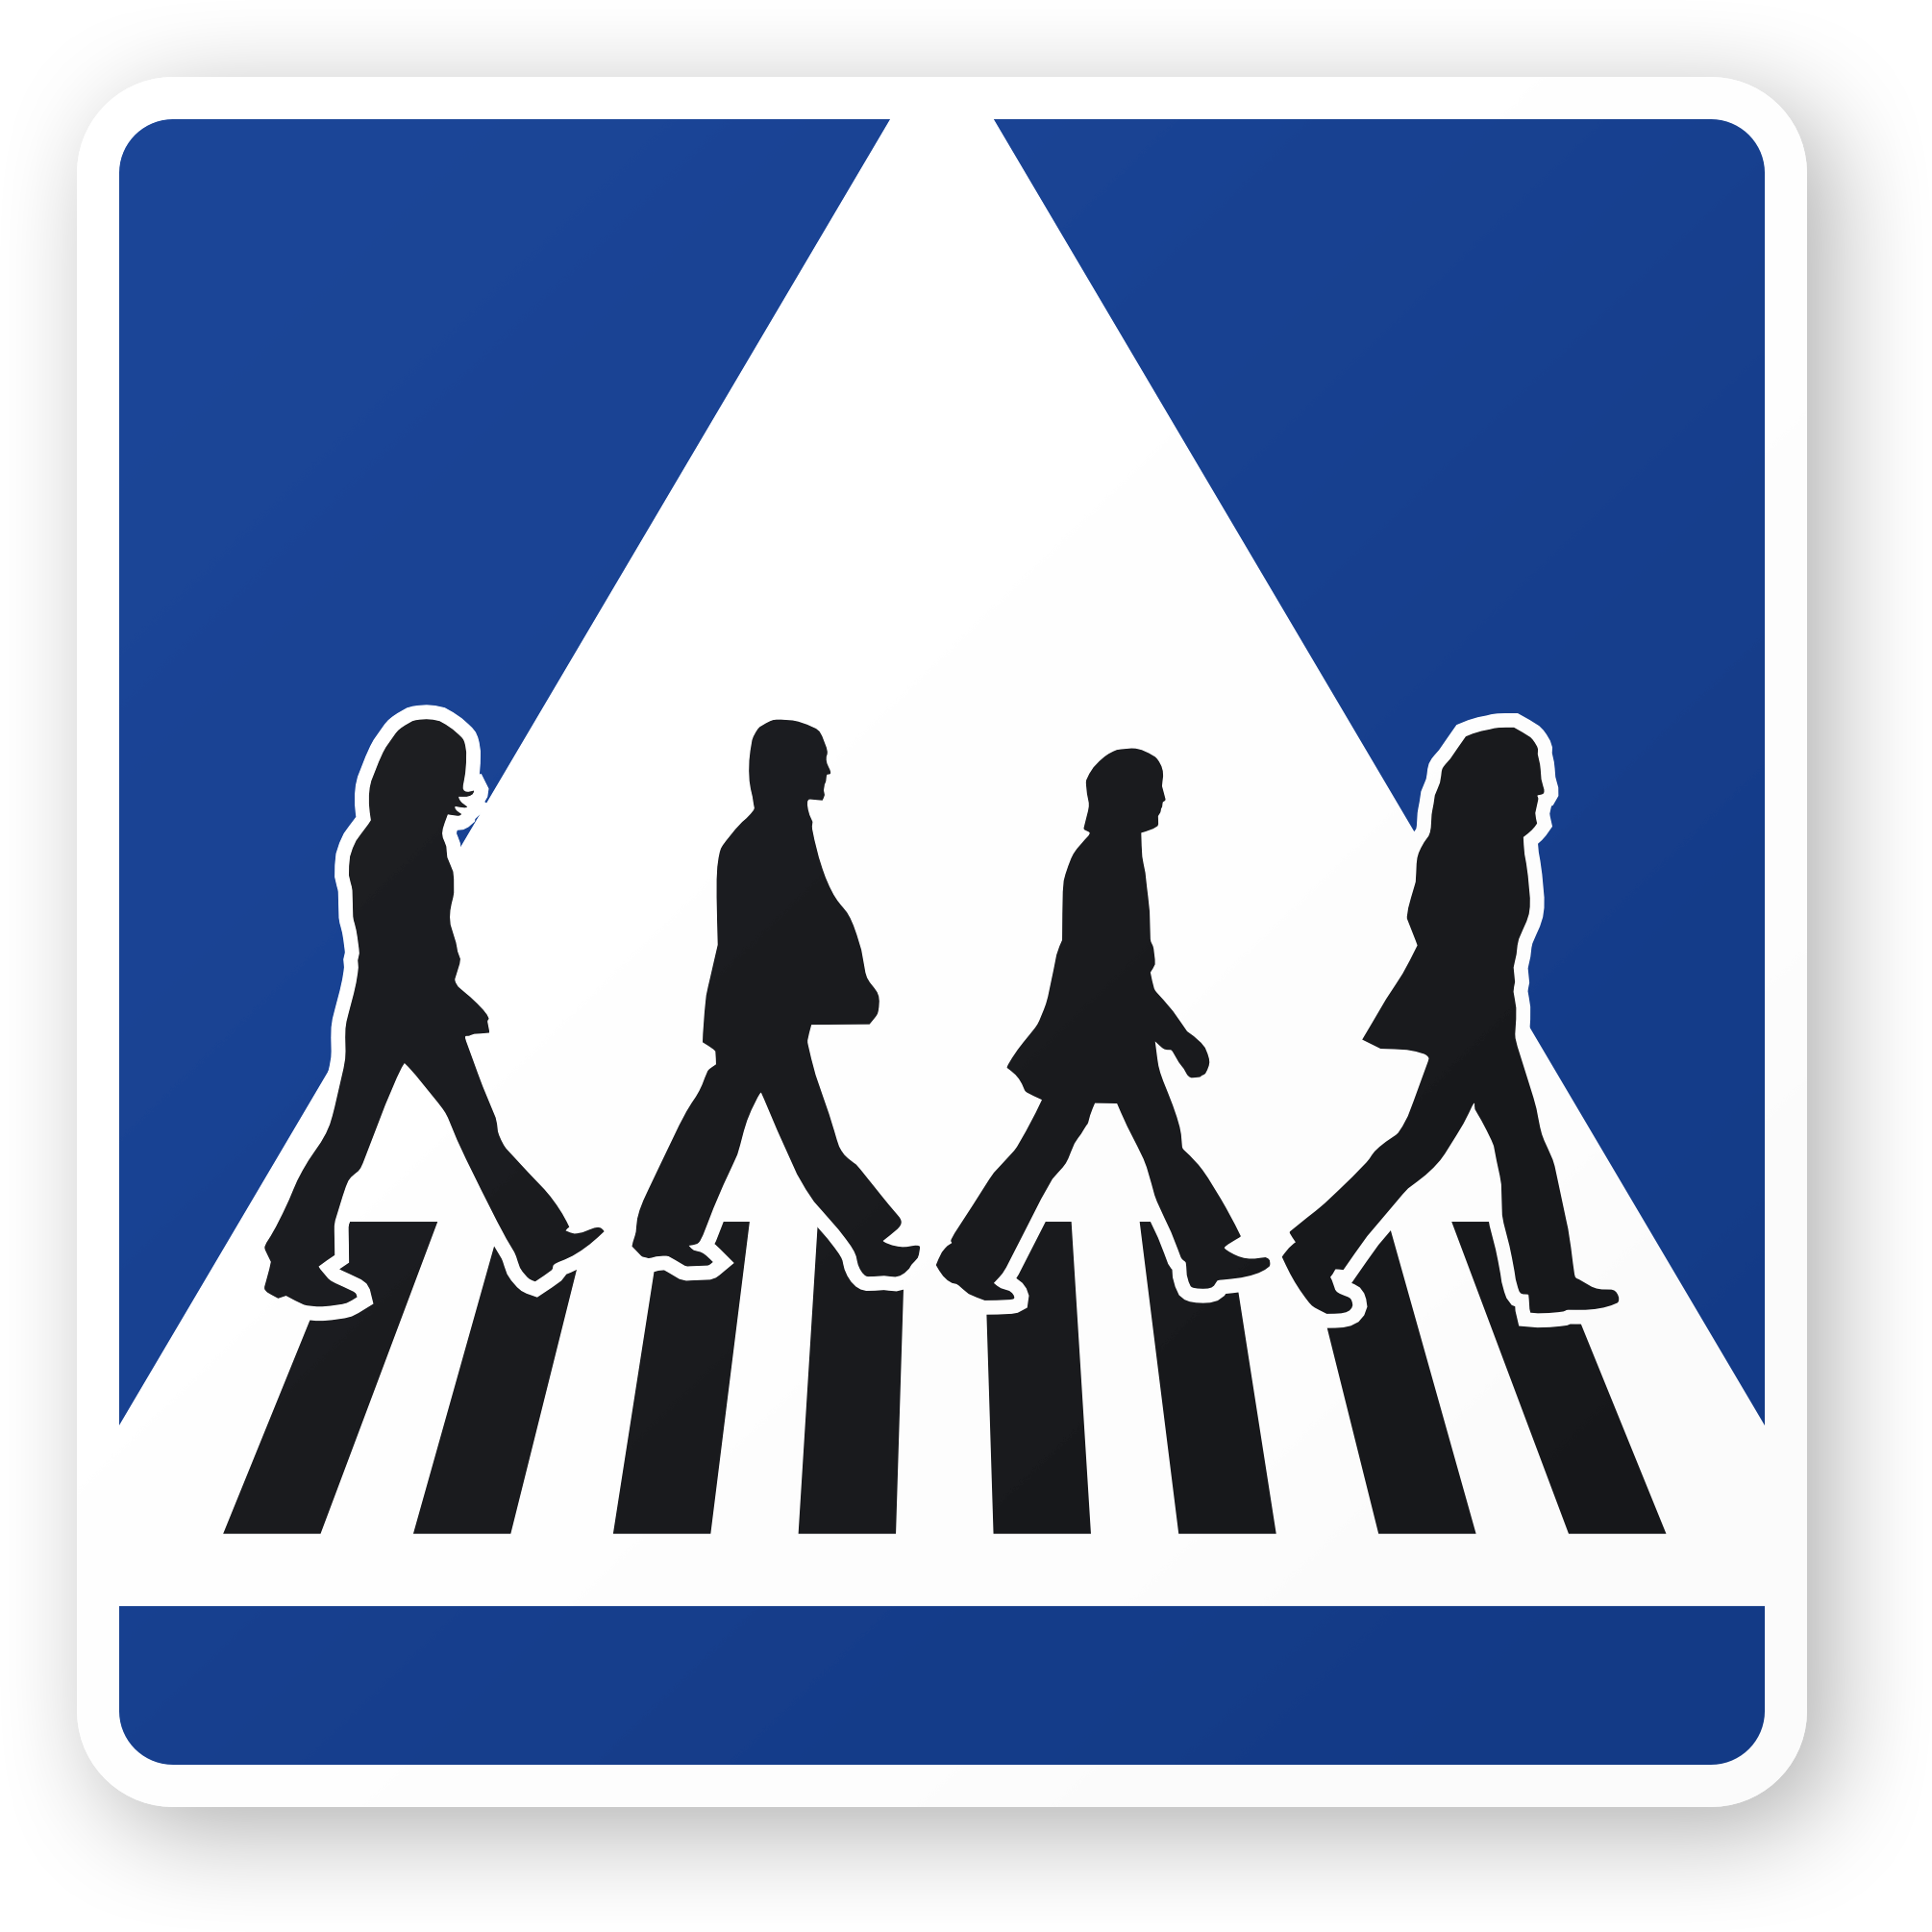 Source Http Steve Lovelace Com Wordpress Wp Content Uploads 2012 06 Abbey Road Crossing Sign Png Abbey Road Beatles Art Beatles Abbey Road